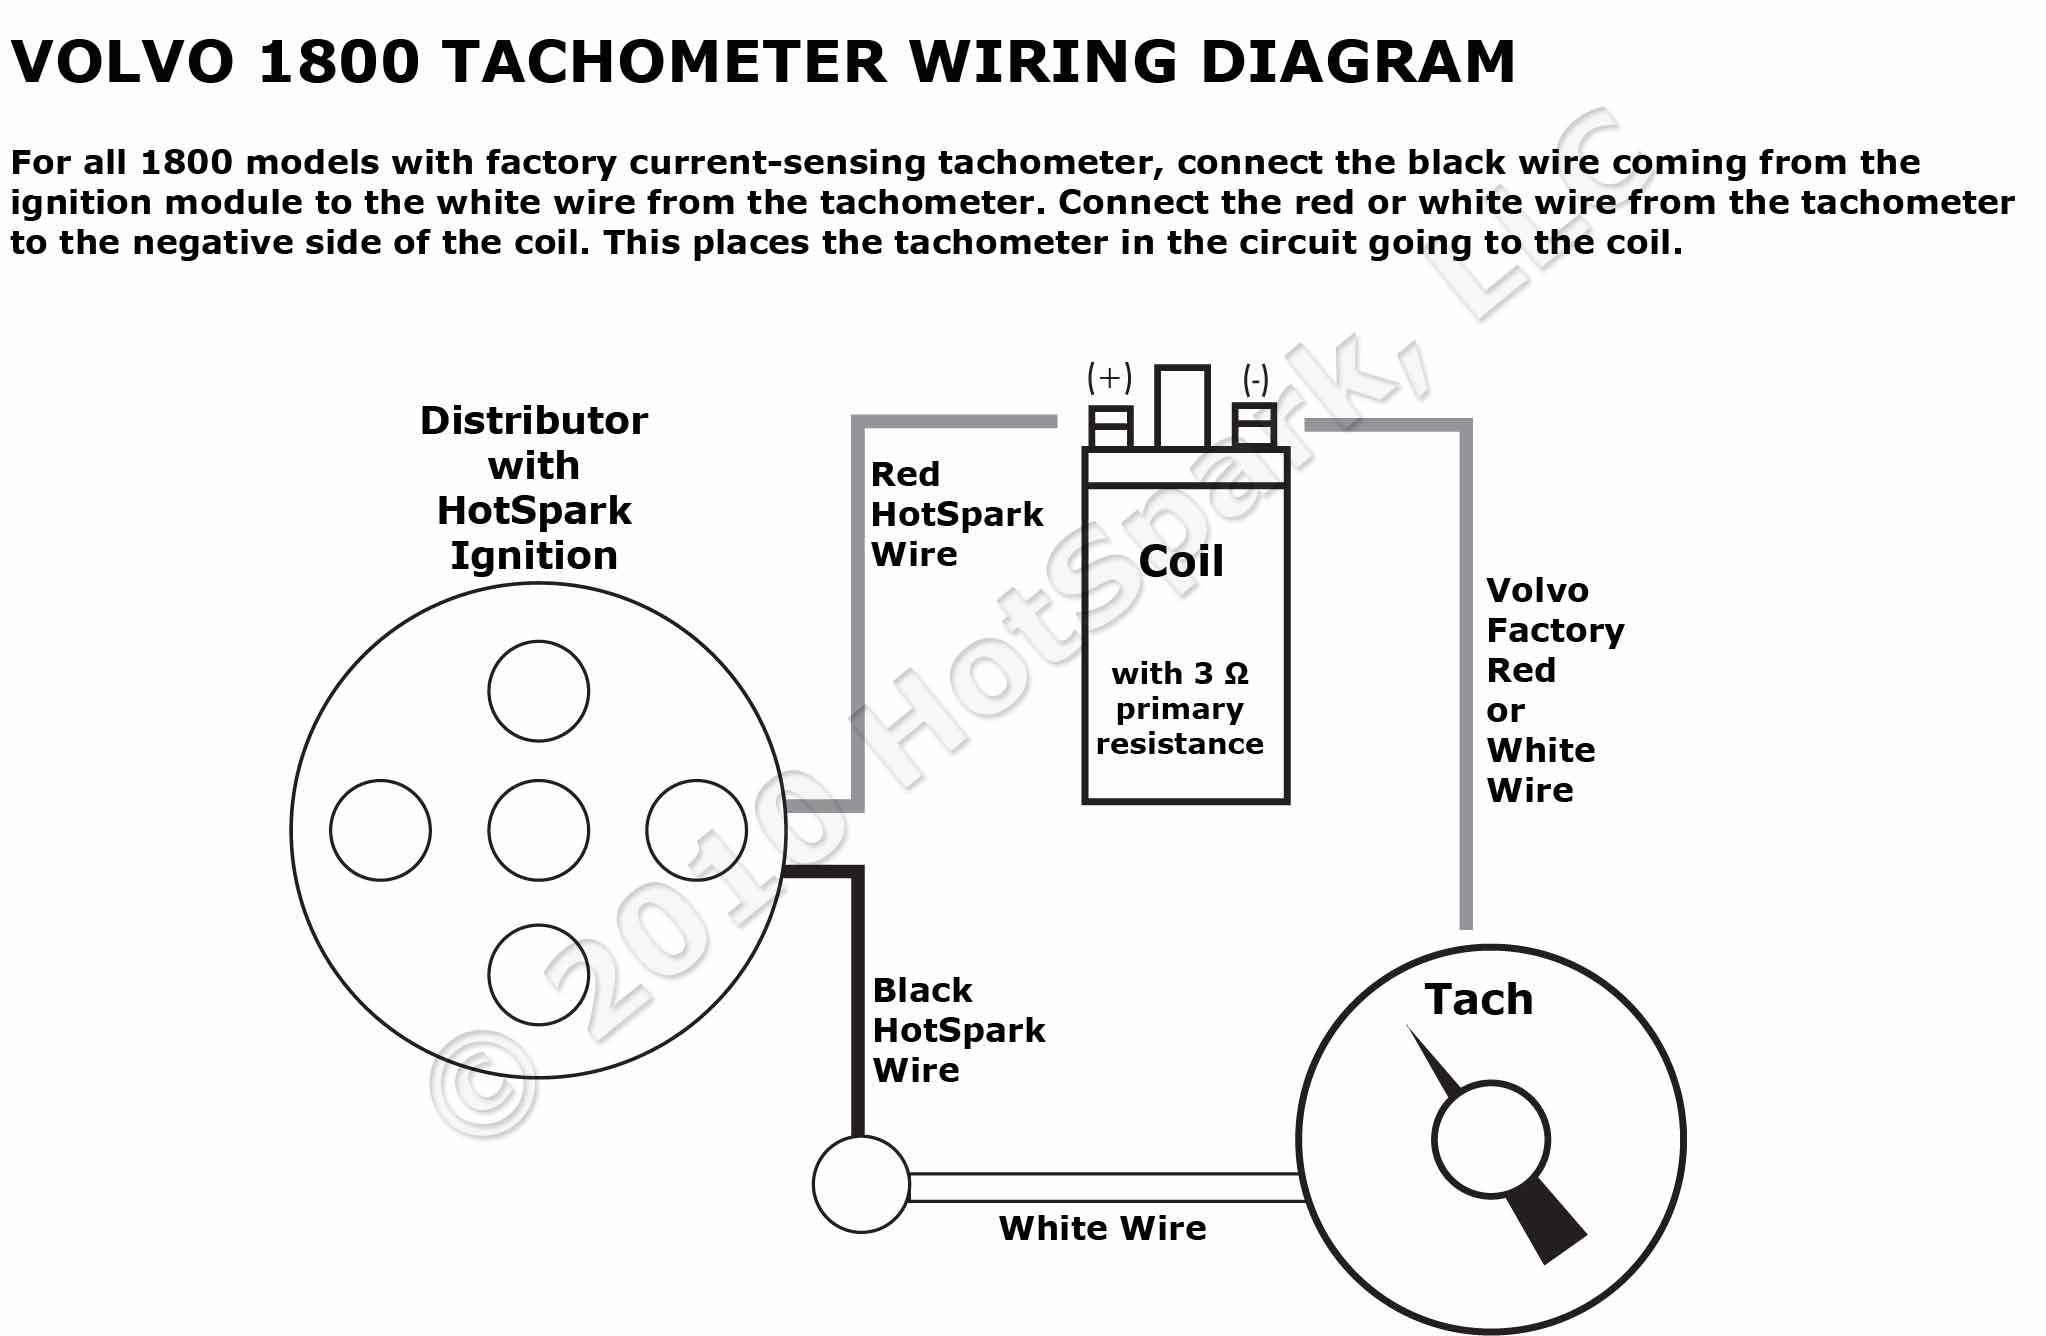 Volvo 1800 Tachometer and Hot Spark Wiring Diagram tach wiring diagram autometer tach wiring diagram \u2022 wiring Basic Electrical Wiring Diagrams at bayanpartner.co